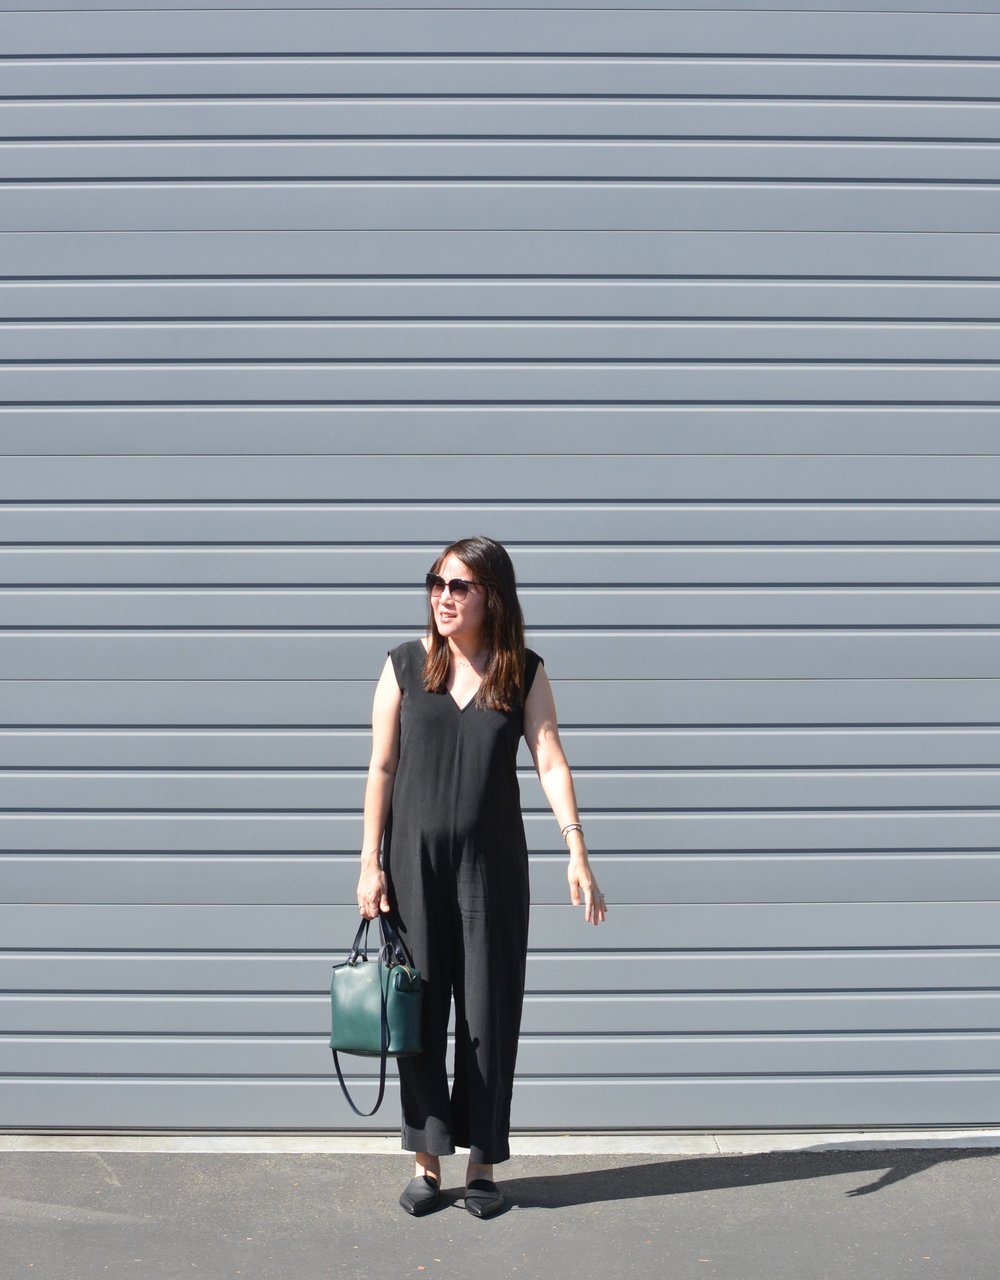 Elizabeth Suzann Review Mara Jumpsuit (1 of 5)-min.jpg